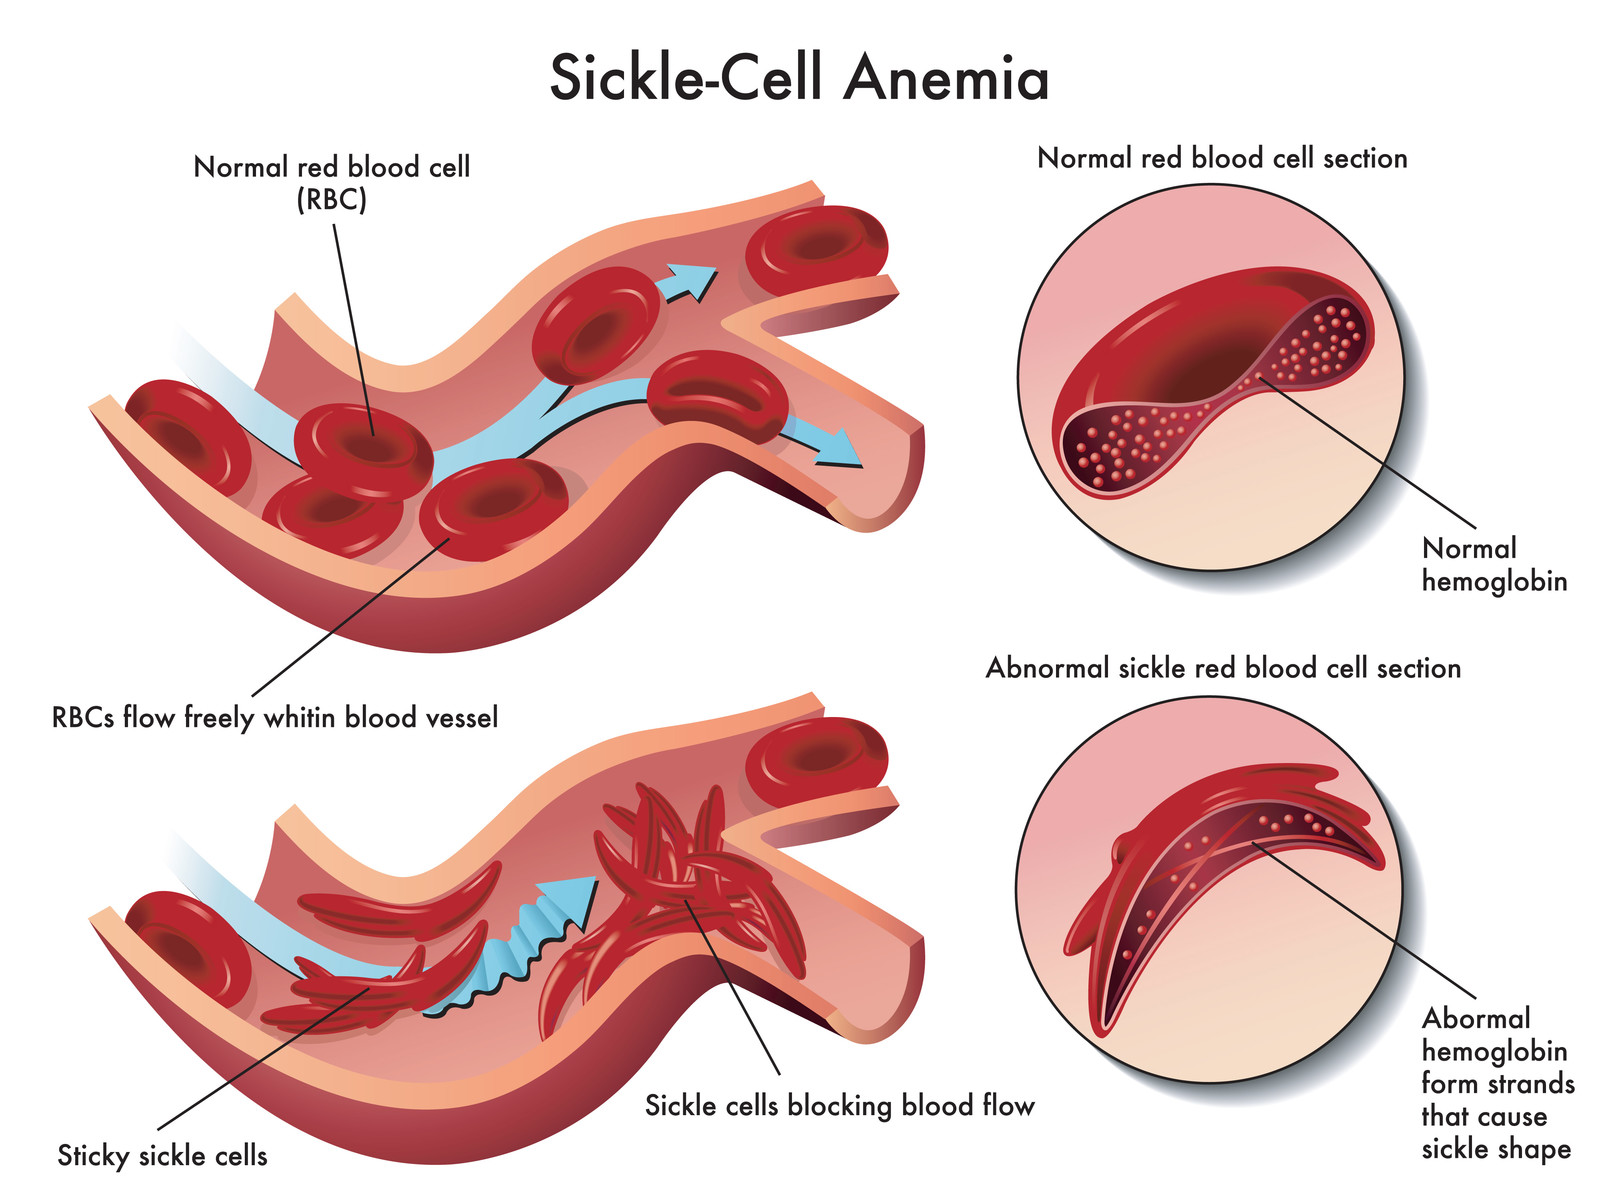 sickle cell plan of care The inset image shows a cross-section of a sickle cell with abnormal (sickle) a plan for what to do and where to get care sickle cell disease research and care.